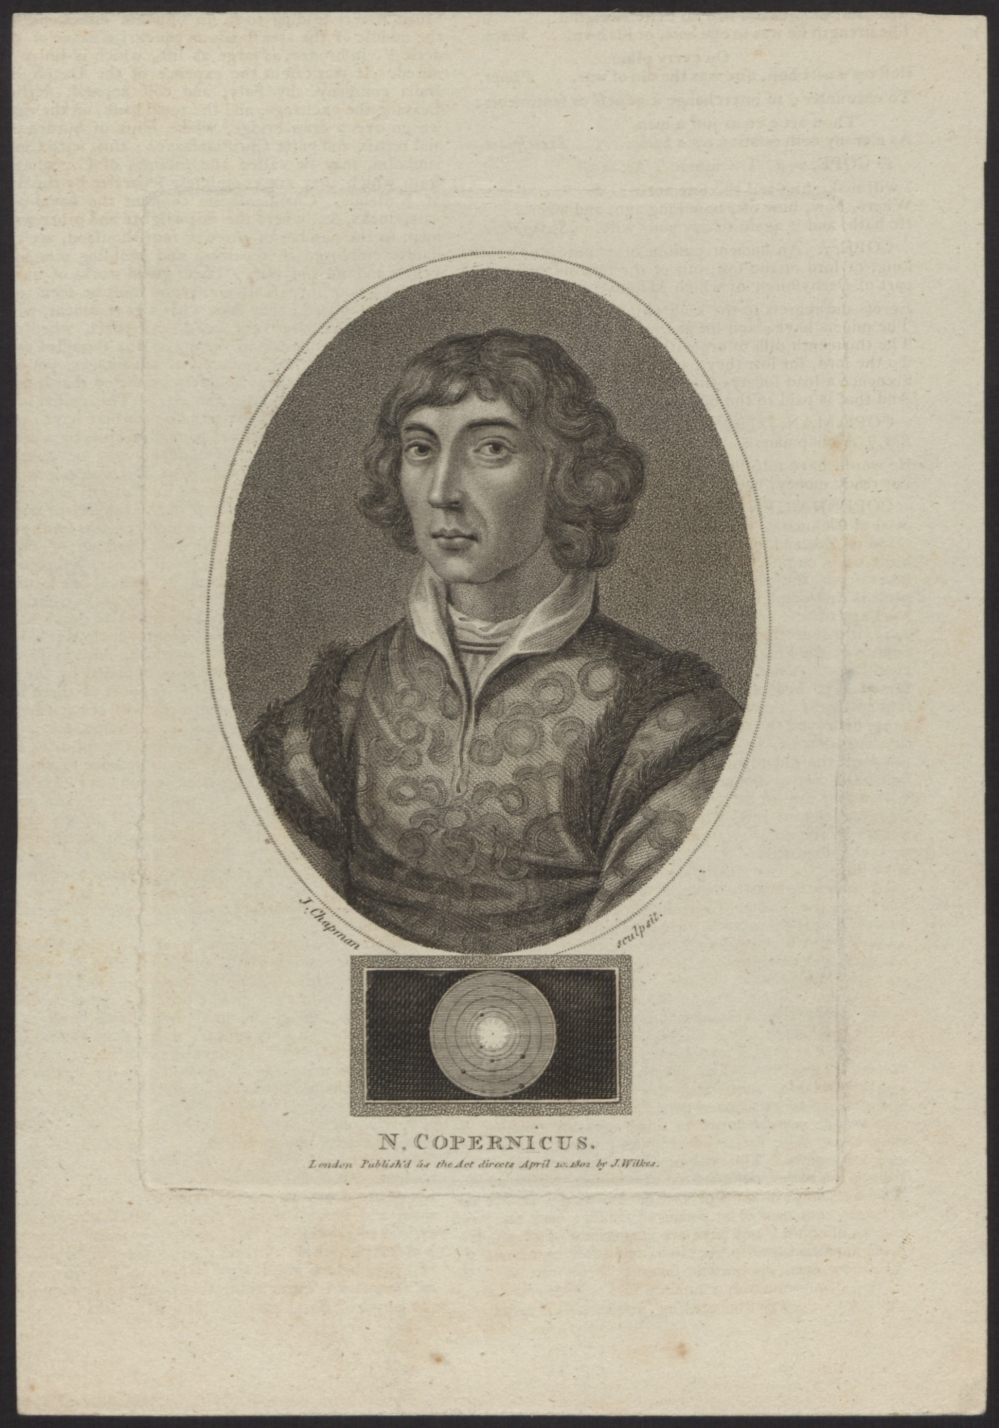 preview image for Print (Engraving) of Nicolaus Copernicus by J. Chapman, published by J. Wilkes, London, 1802.